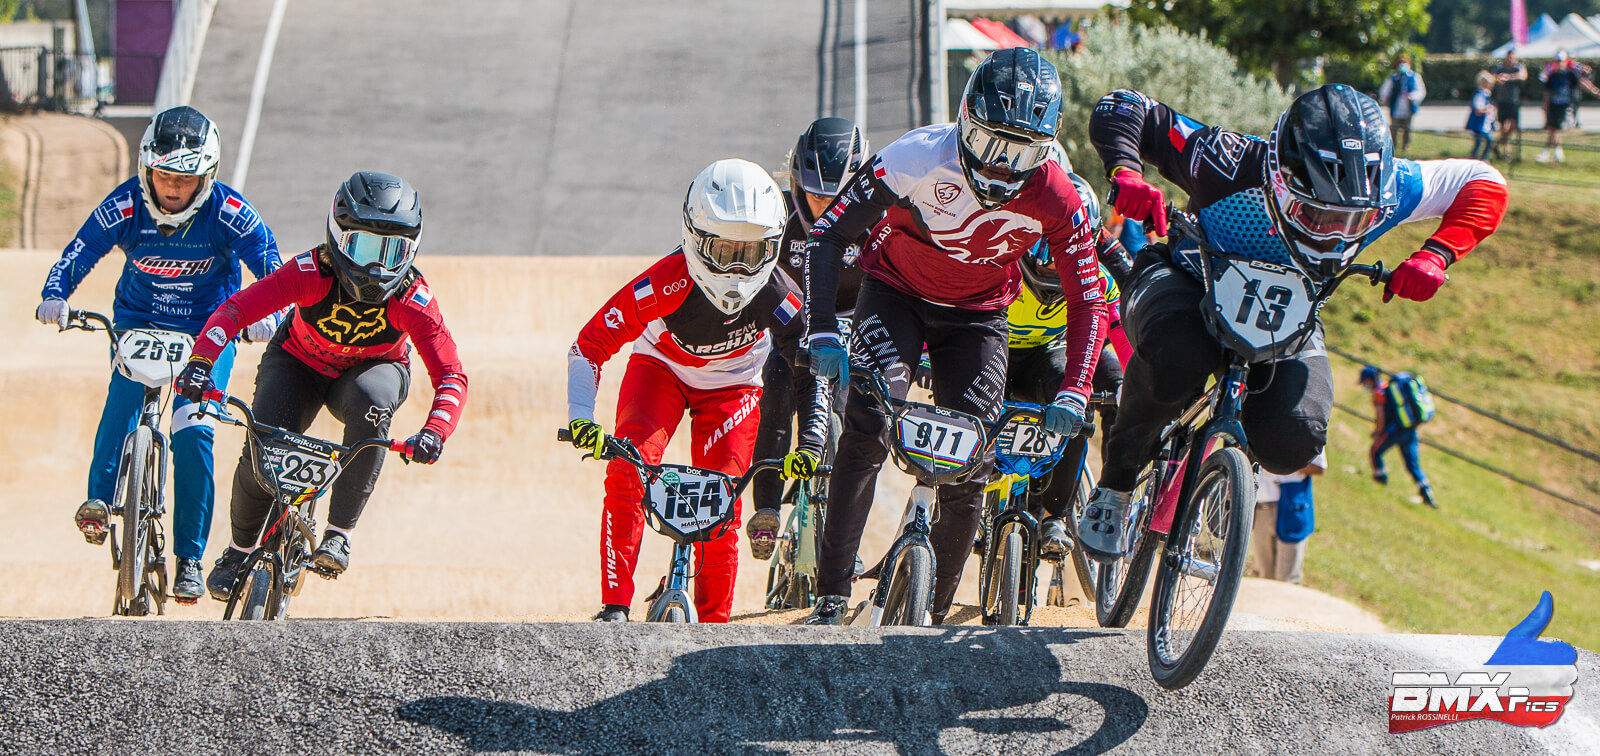 2021 French Cup Mours - BmxPics.fr - 001